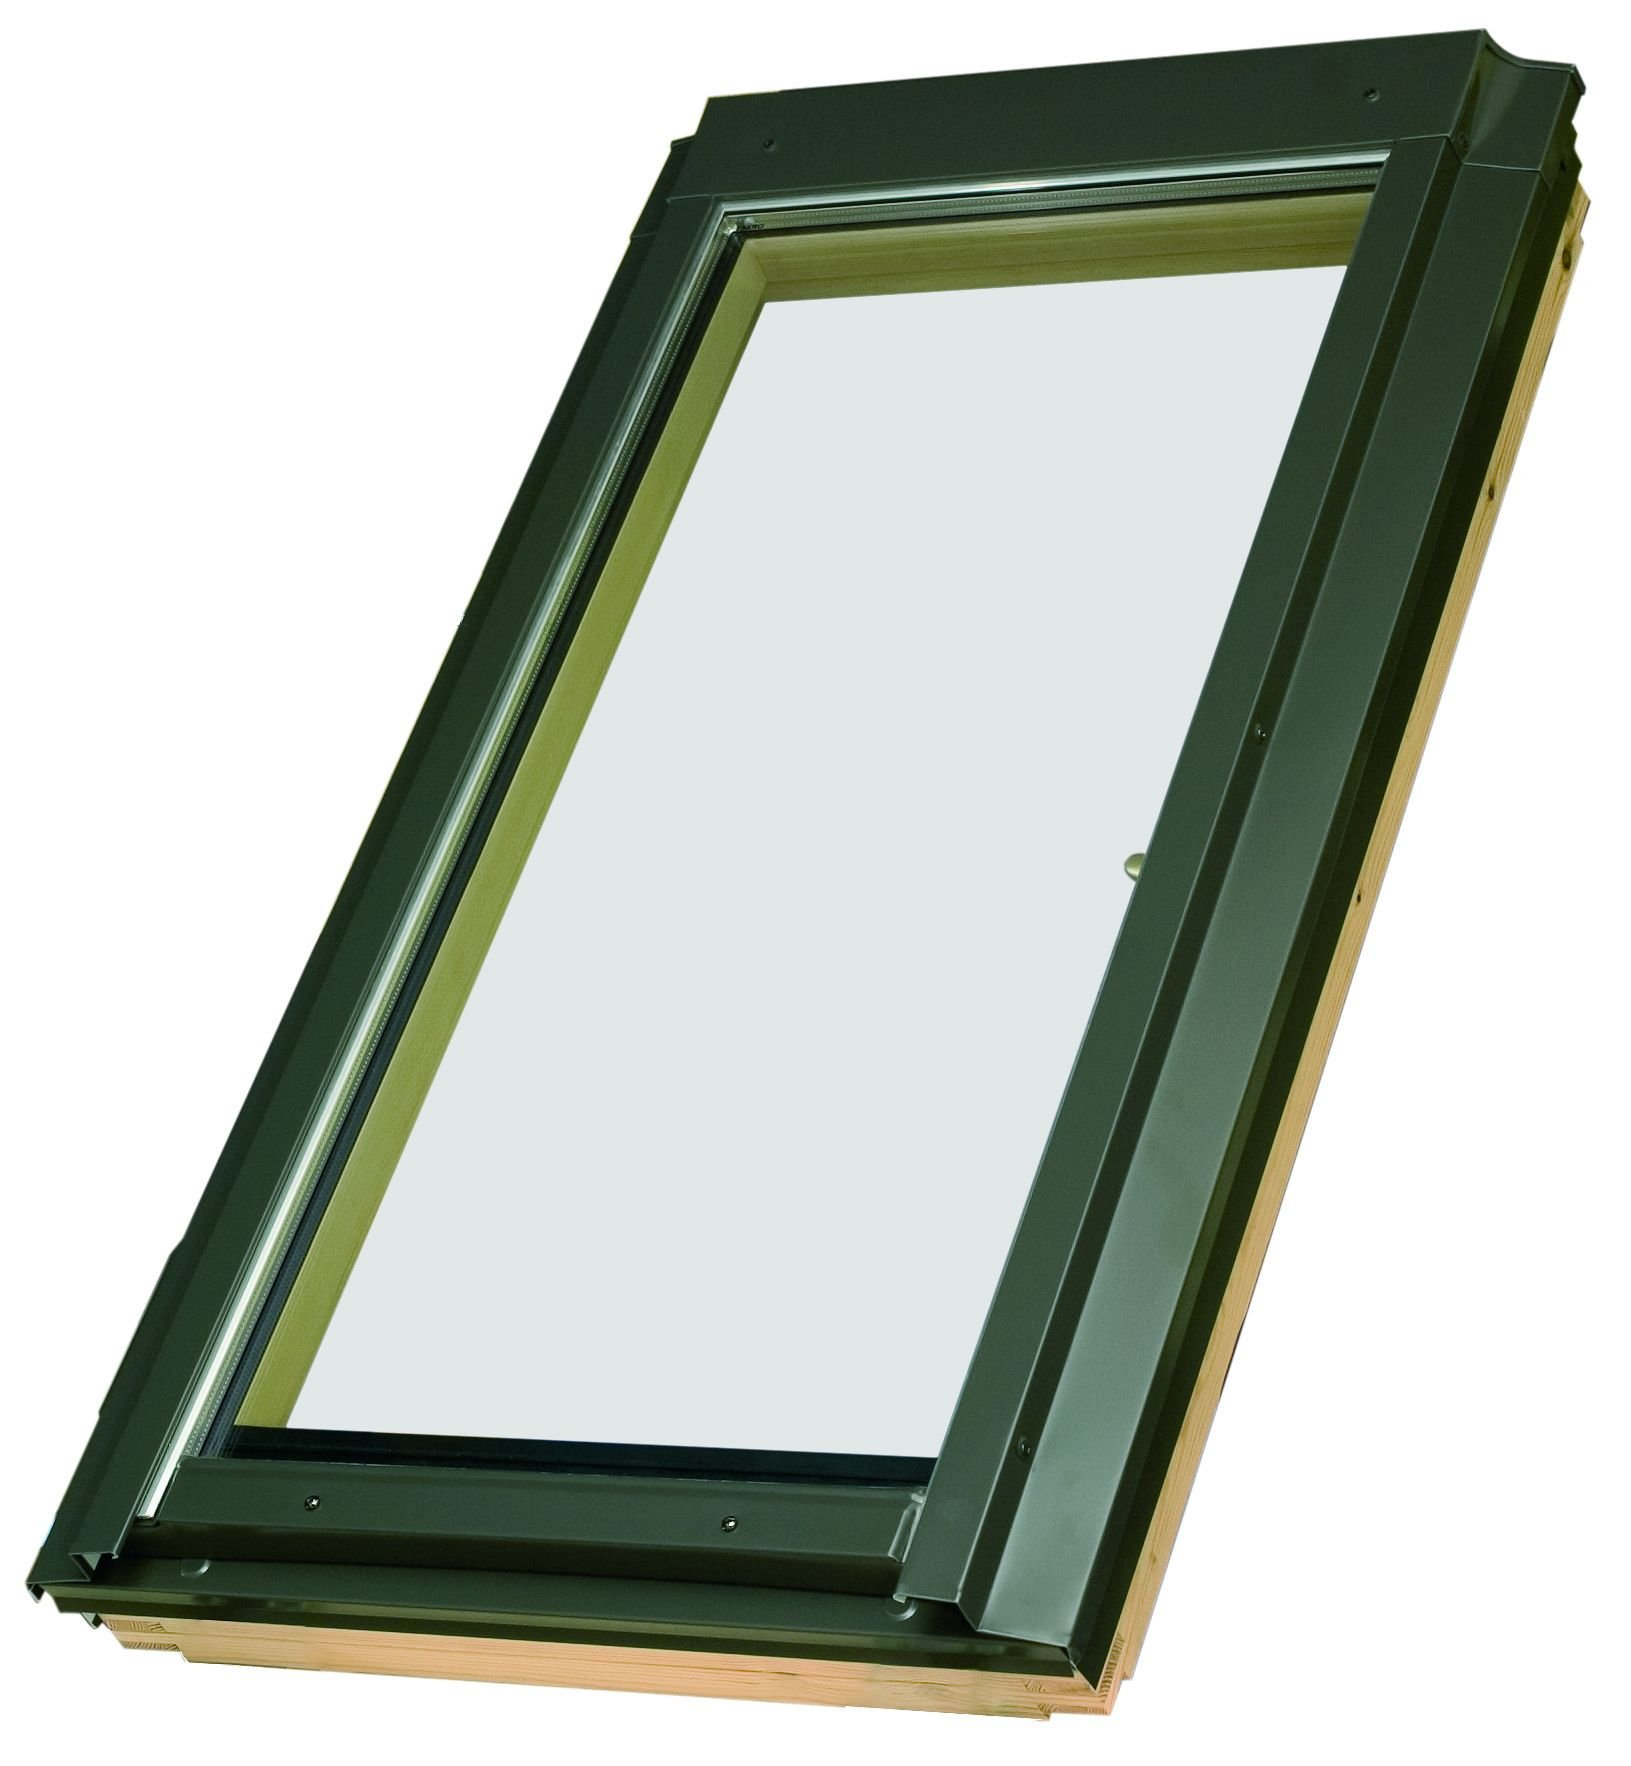 FAKRO FWU-L  69157 Egress Roof Window, 24-Inch x 38-Inch, Left Opening by FAKRO (Image #4)